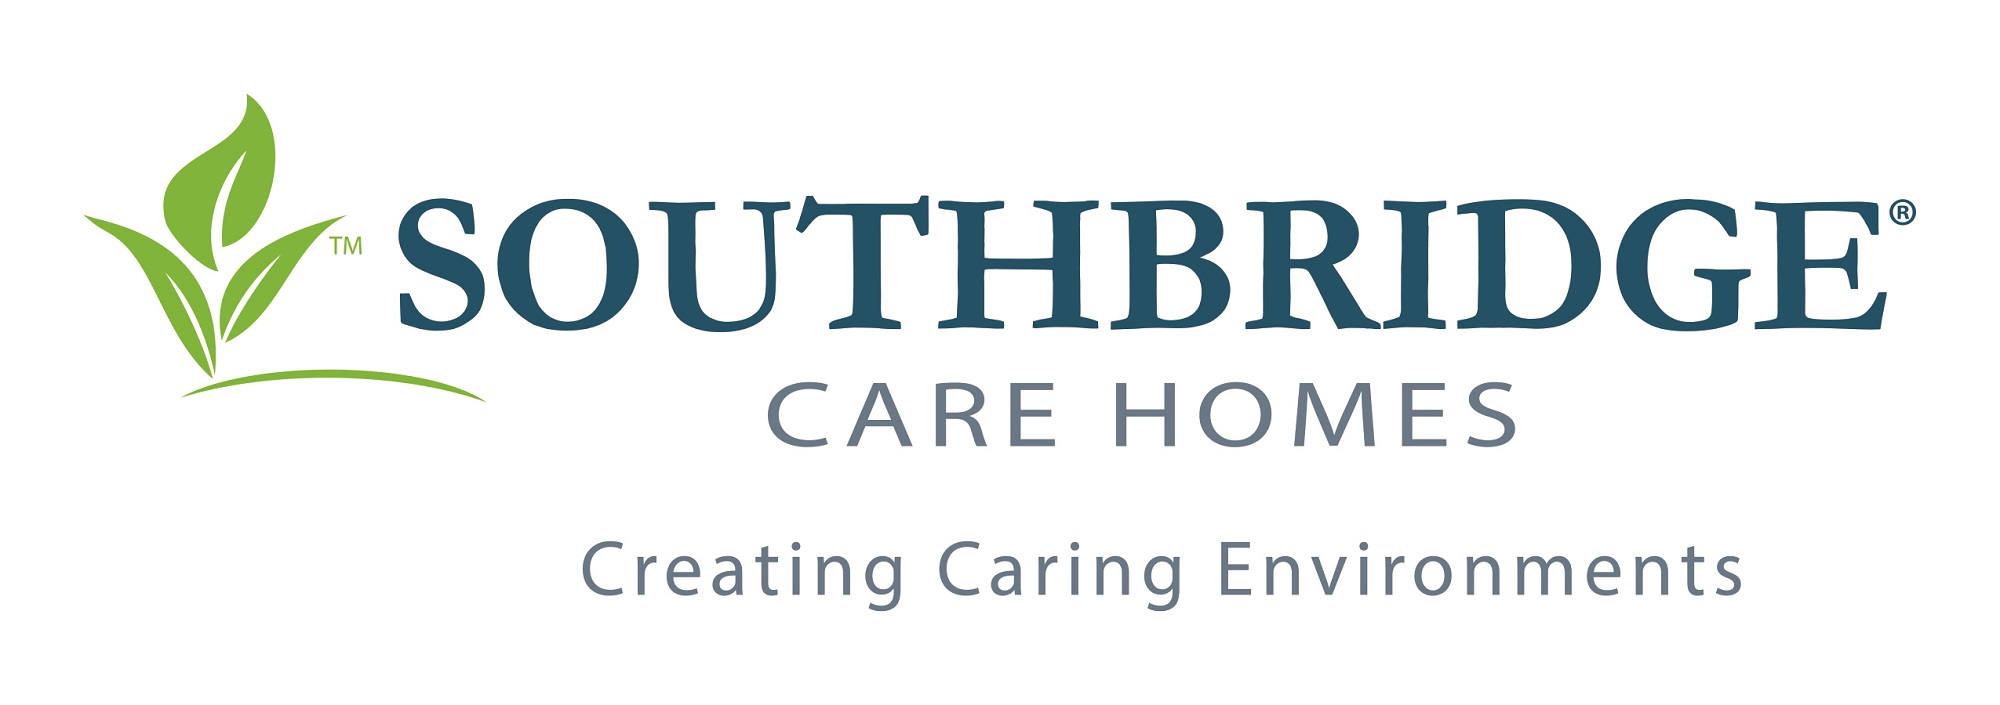 53 new long-term care beds coming to Scugog